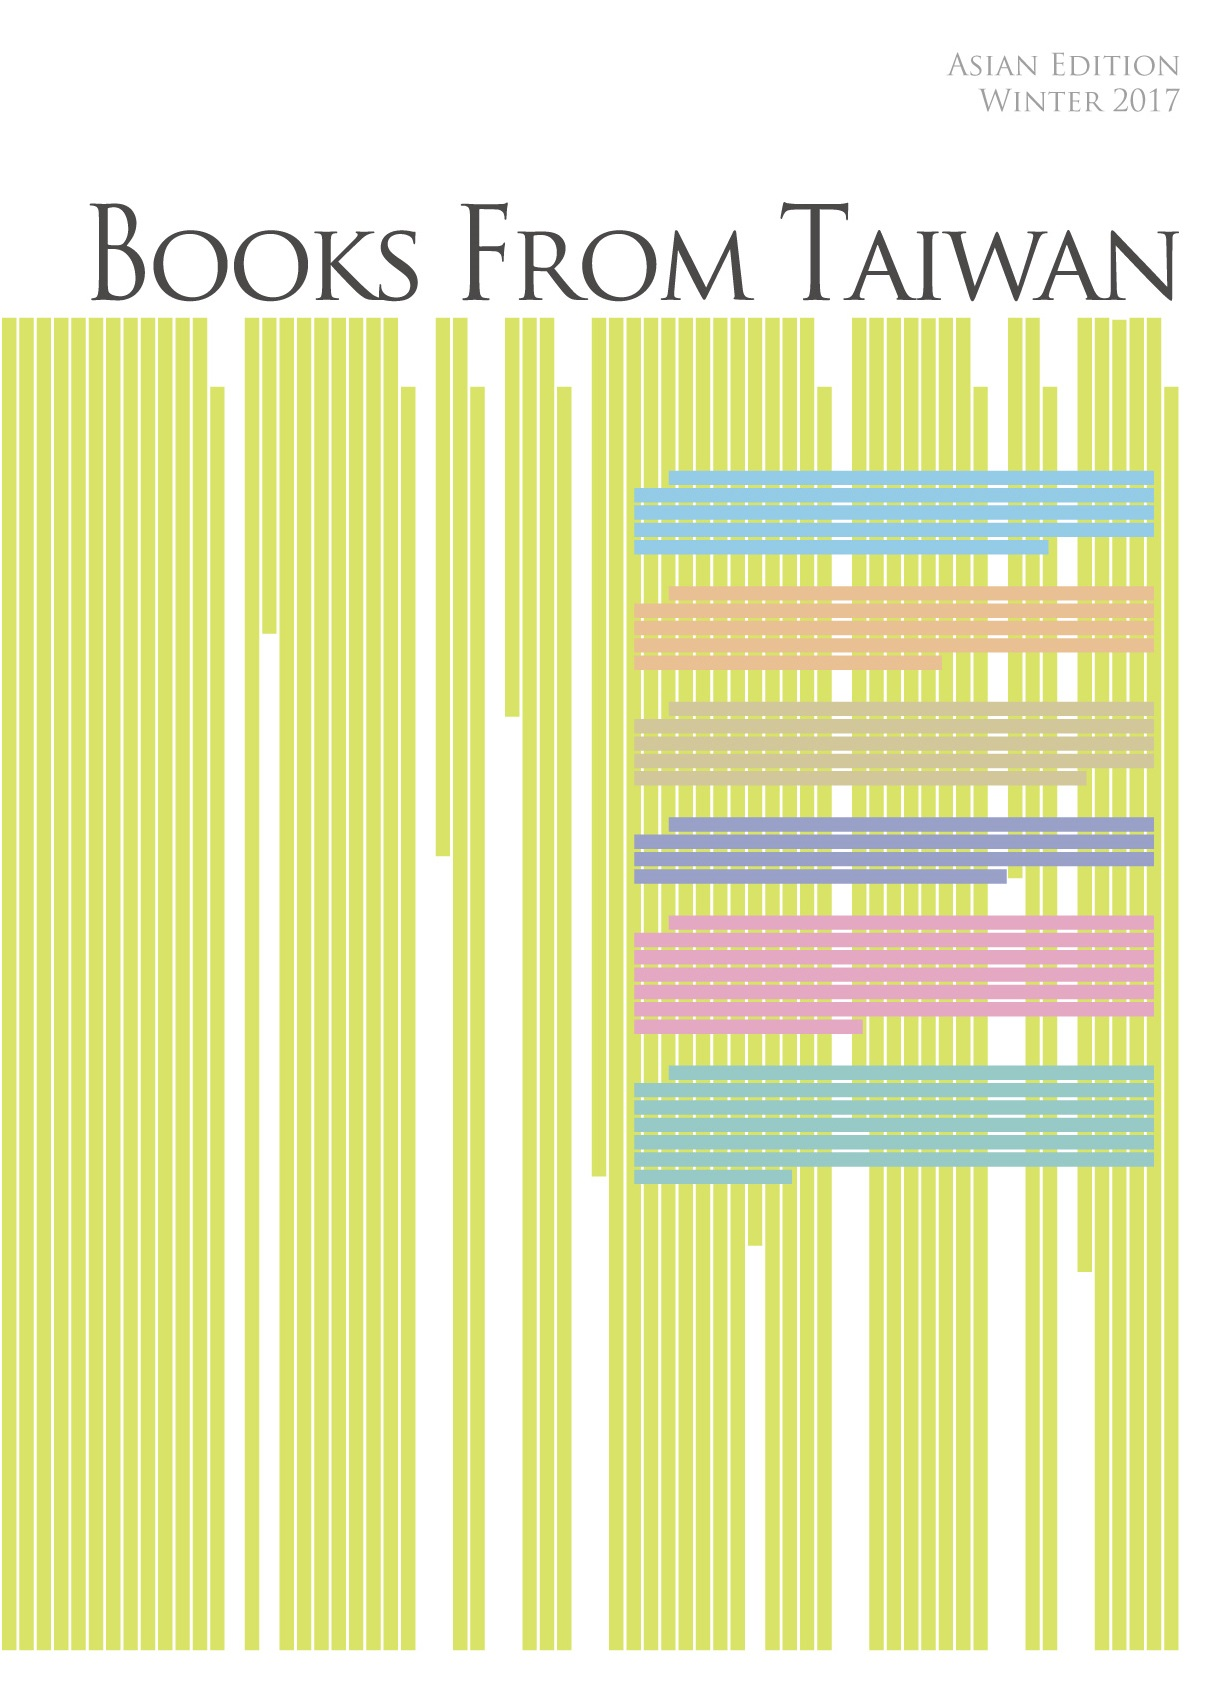 Books from Taiwan Asian Edition 2017